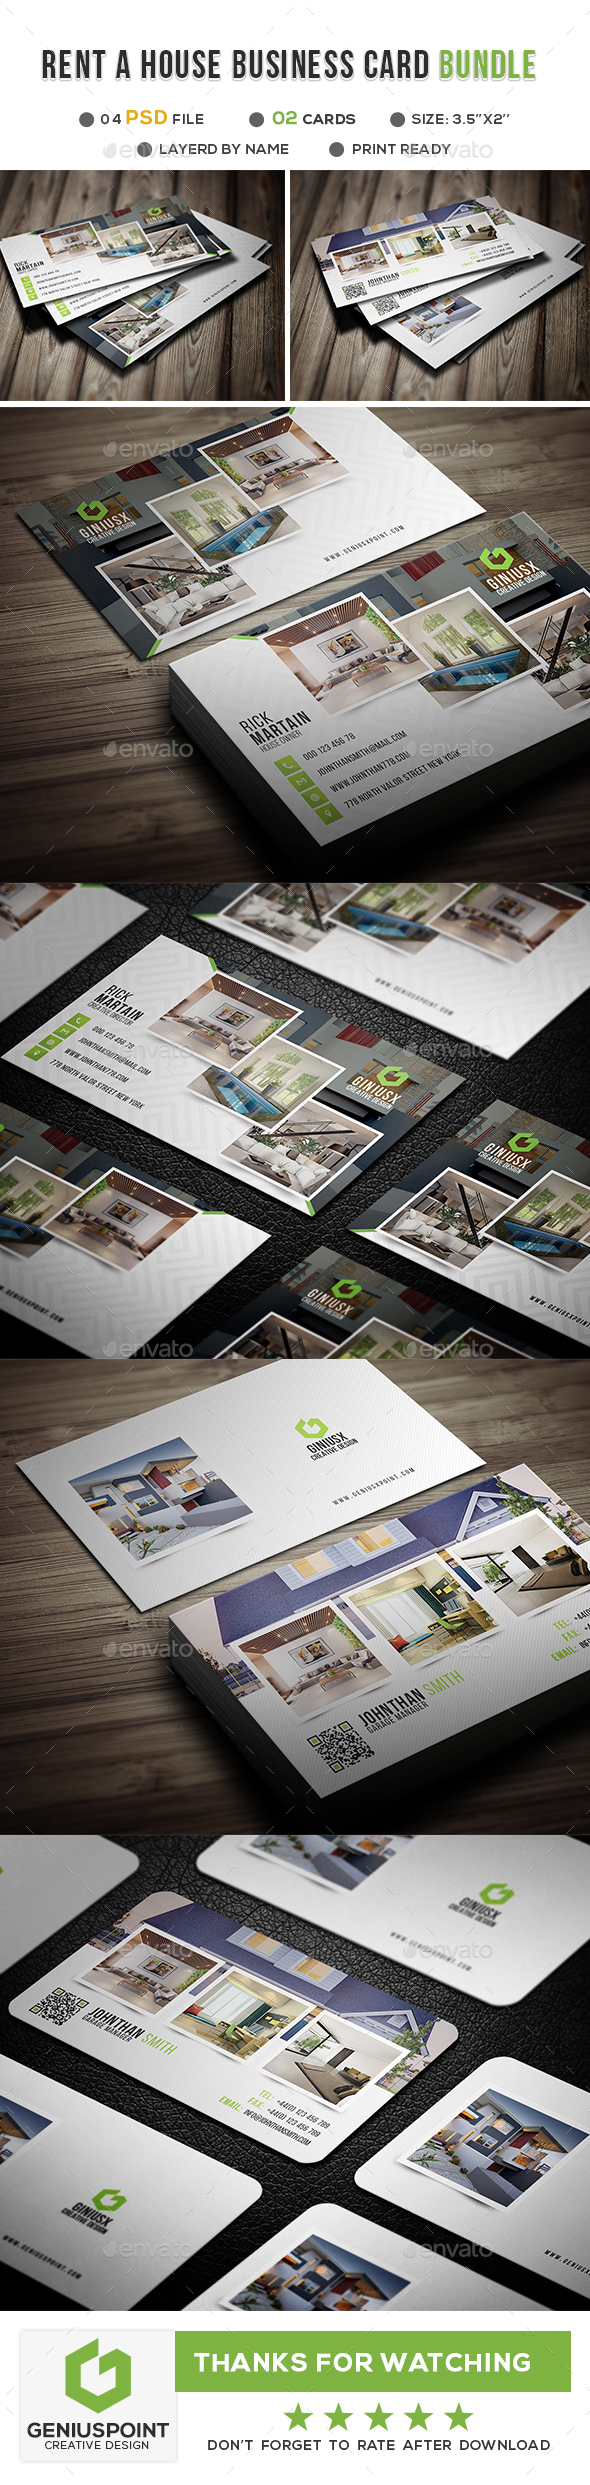 GraphicRiver Rent House Business Card Bundle 21134204